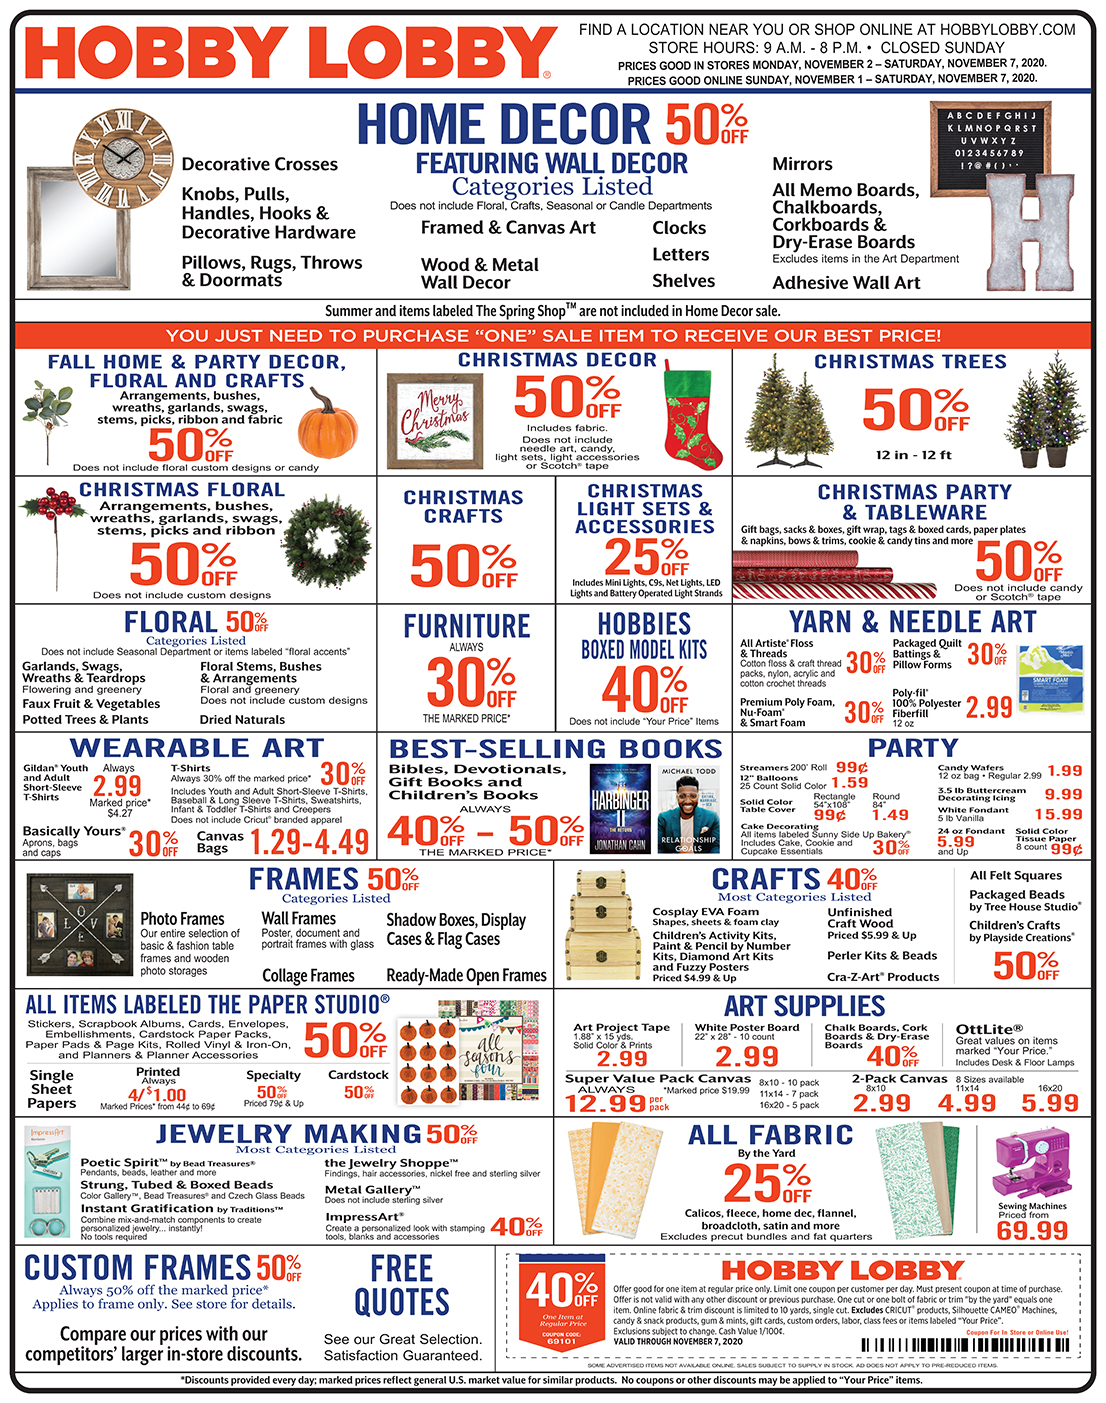 Hobby Lobby Weekly Ad - Prices Good Through November 7th 2020